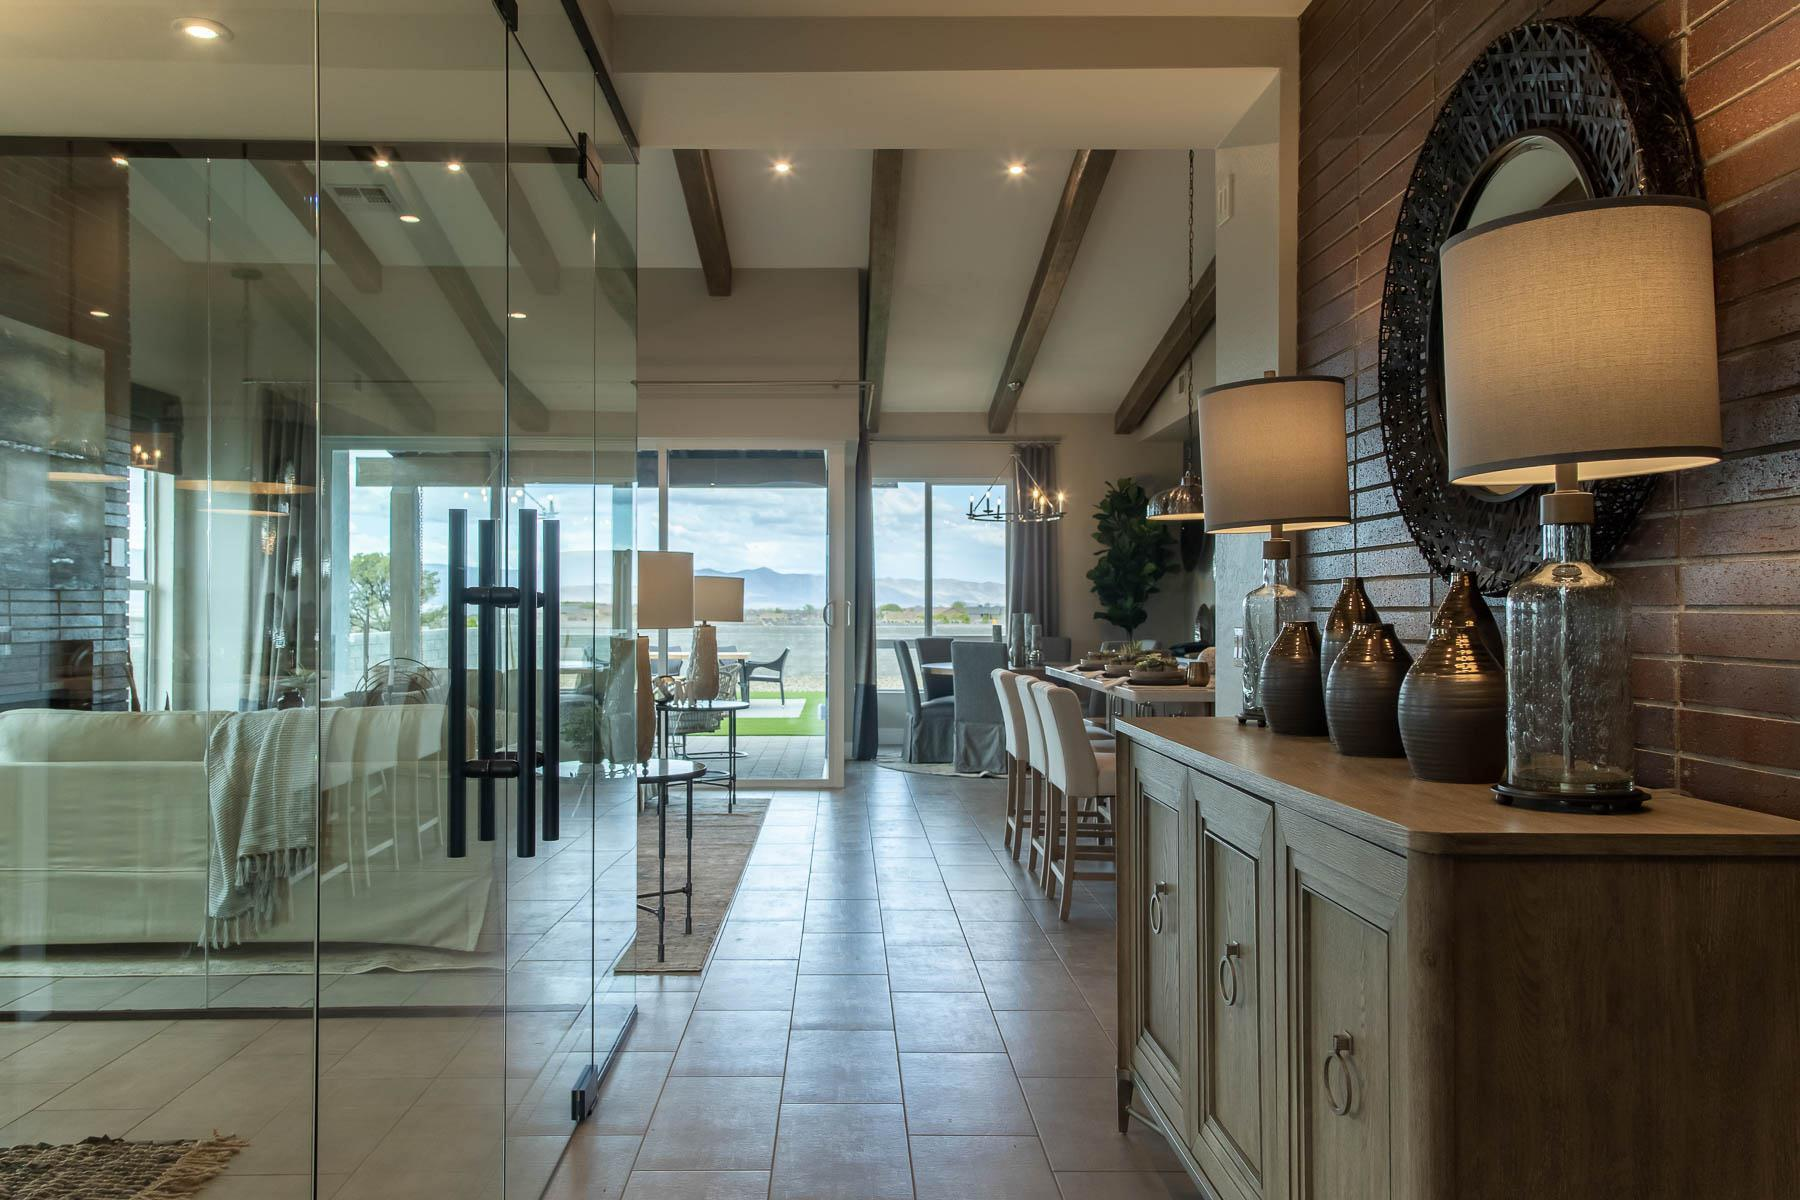 Living Area featured in the J603 By Mandalay Homes in Prescott, AZ